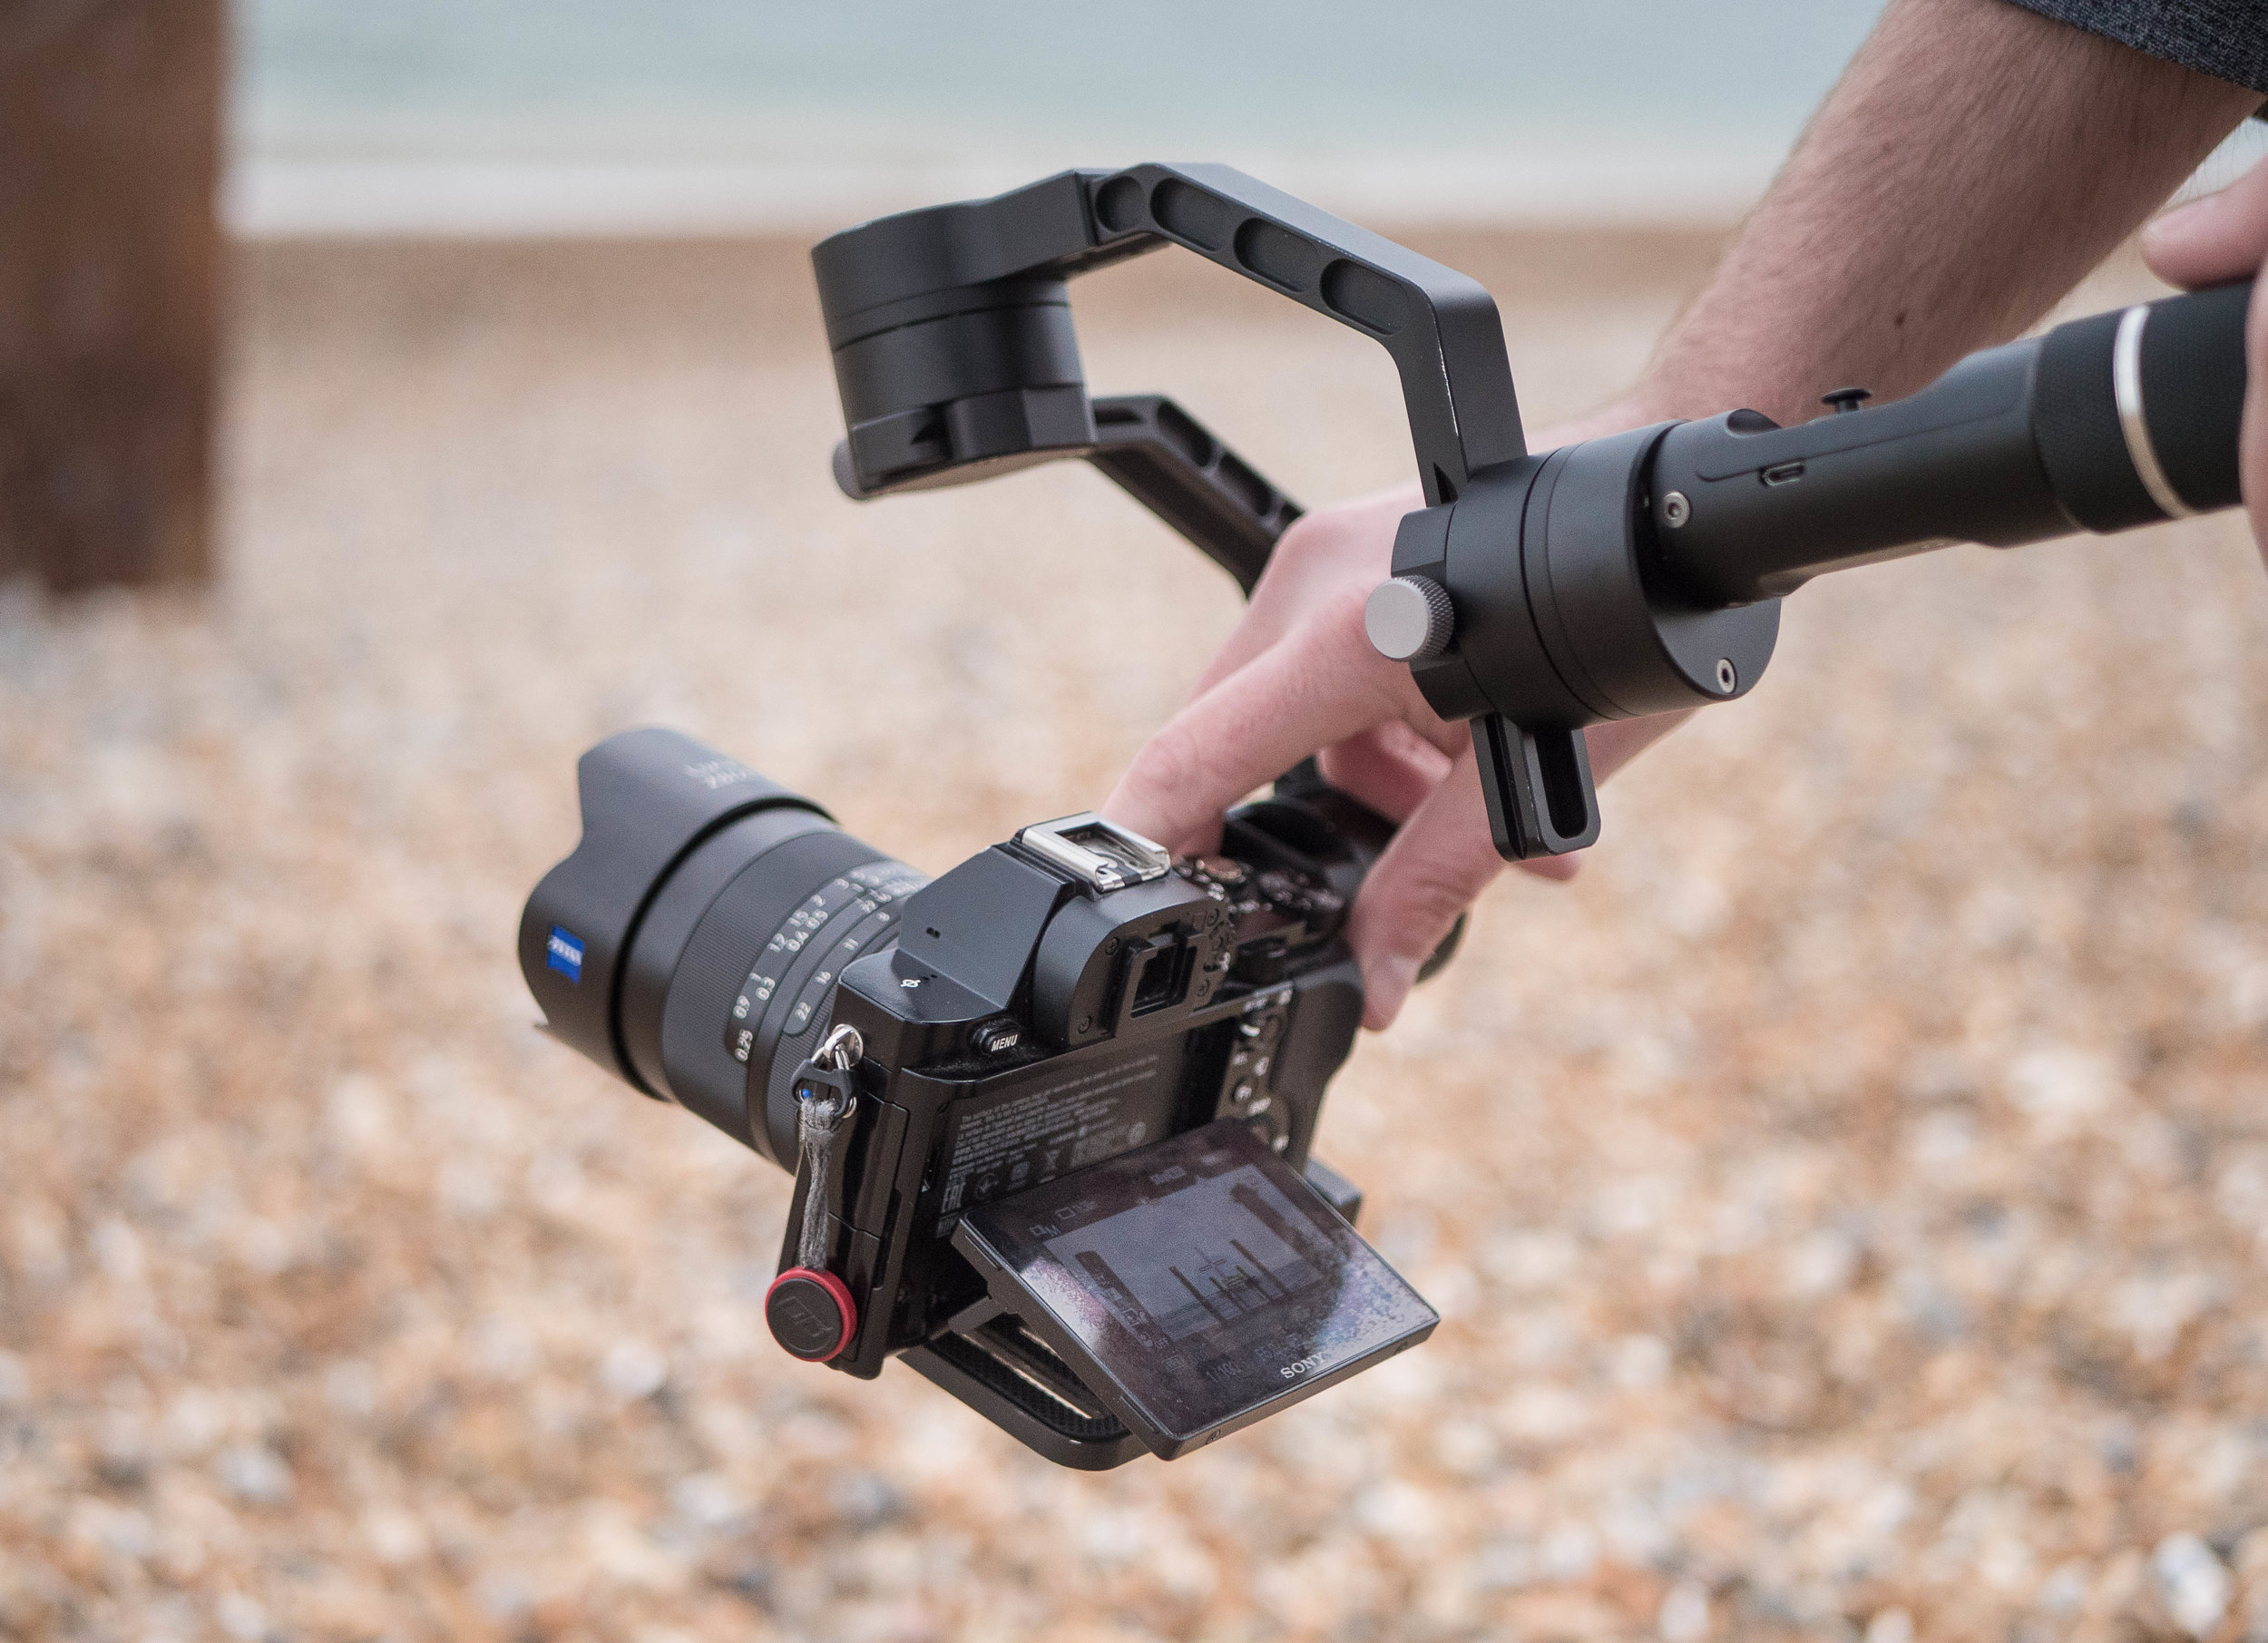 ZEISS Loxia 2.8/21 on the Sony a7S, Zhiyun Crane. Photo by Lucy McPhee